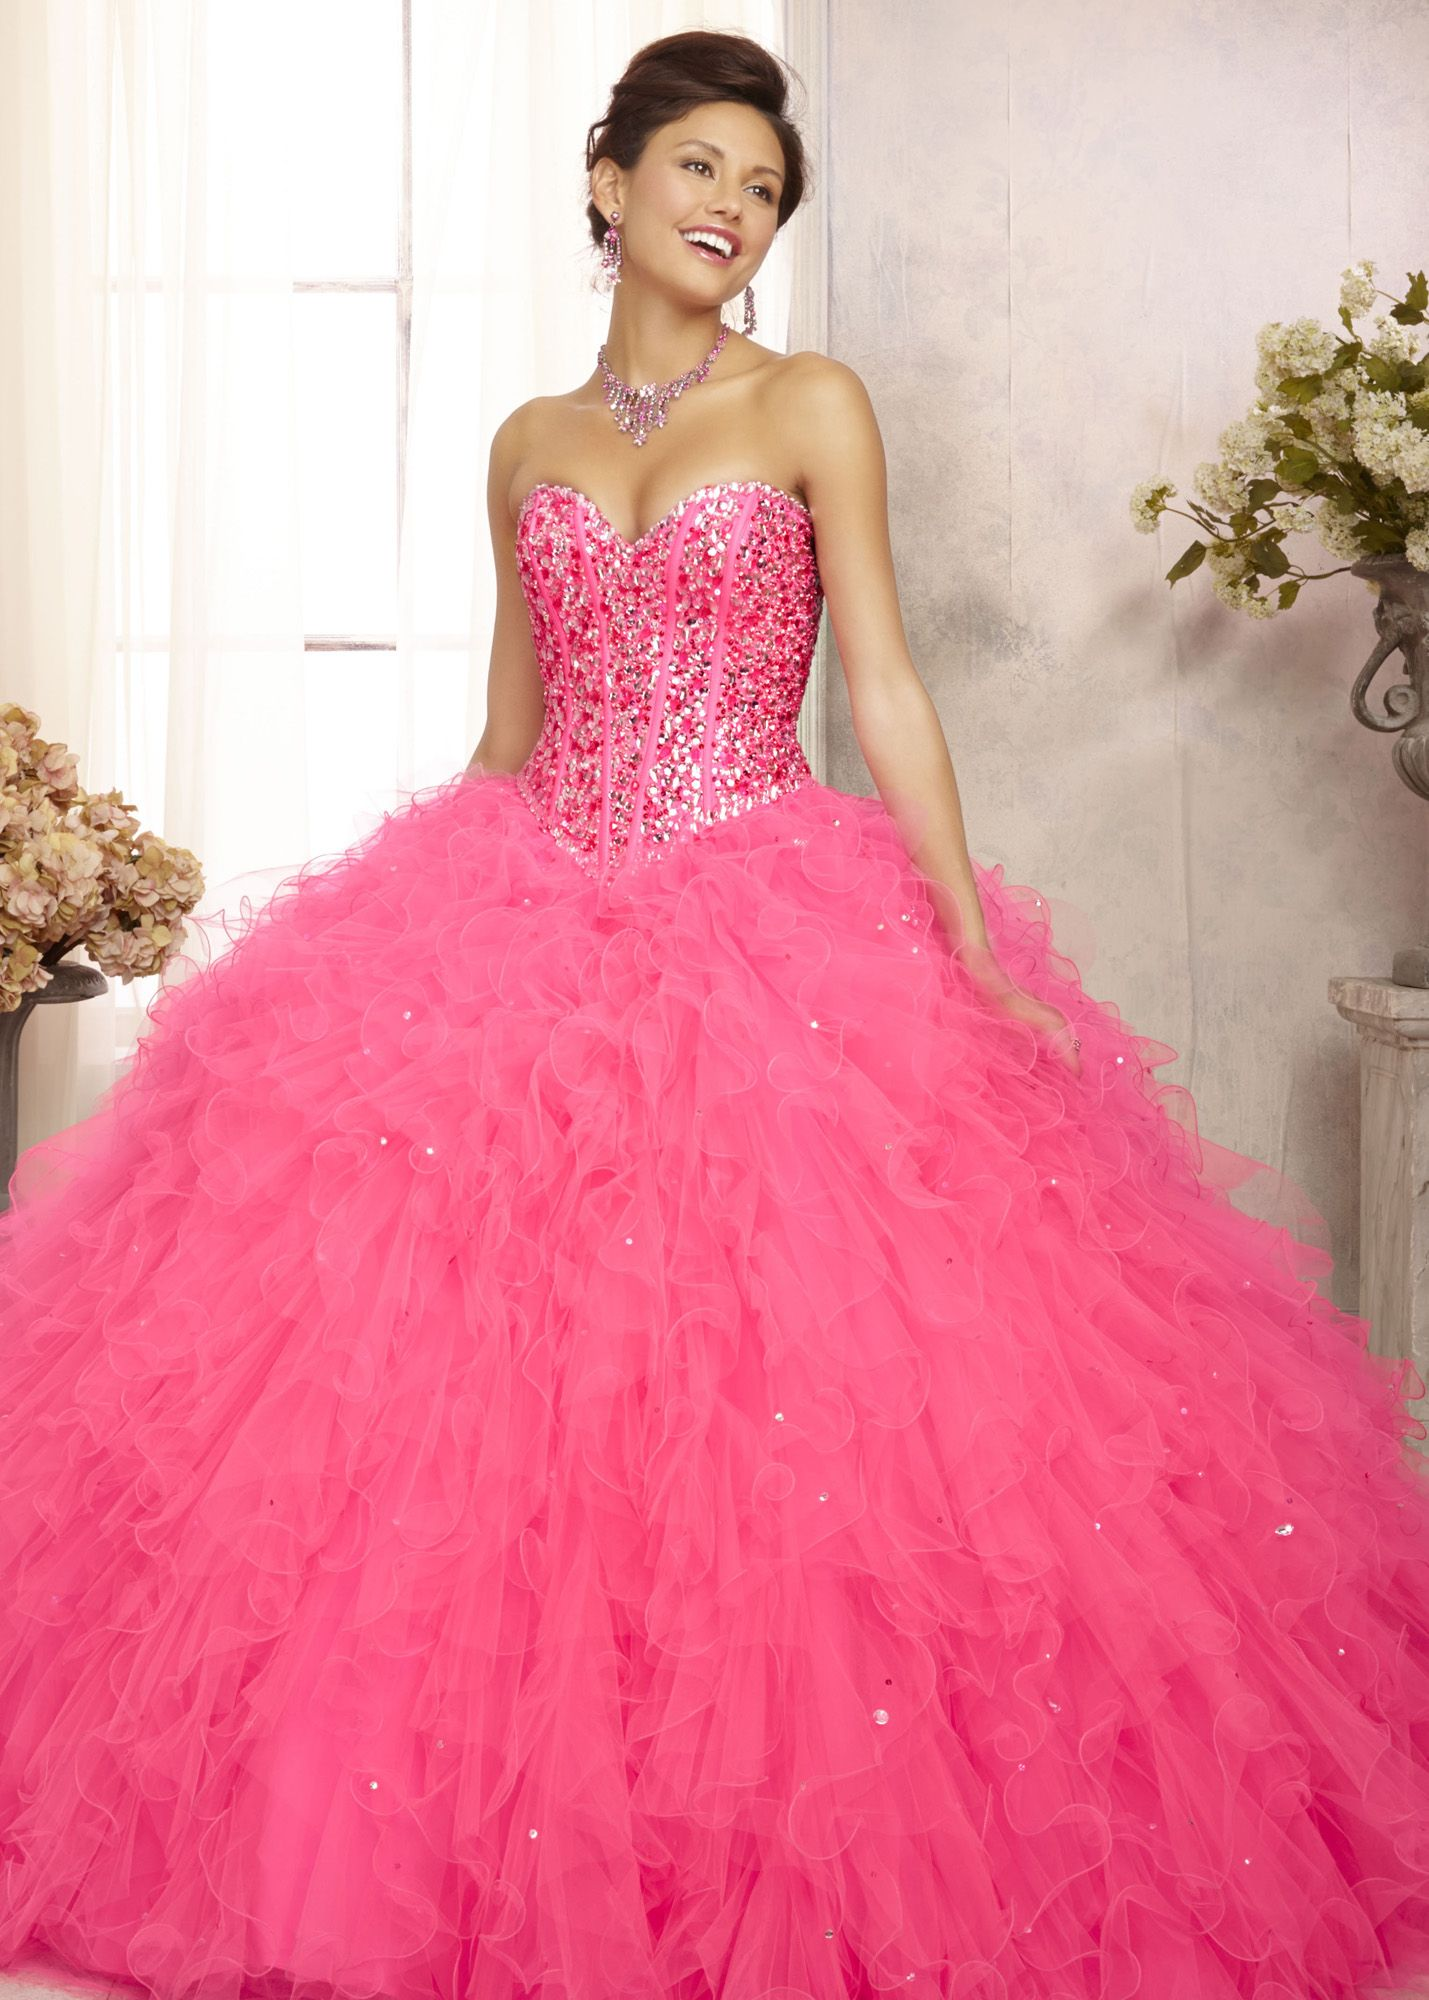 Quinceanera Dresses | Pretty In Pink | Pinterest | Quinceañera ...